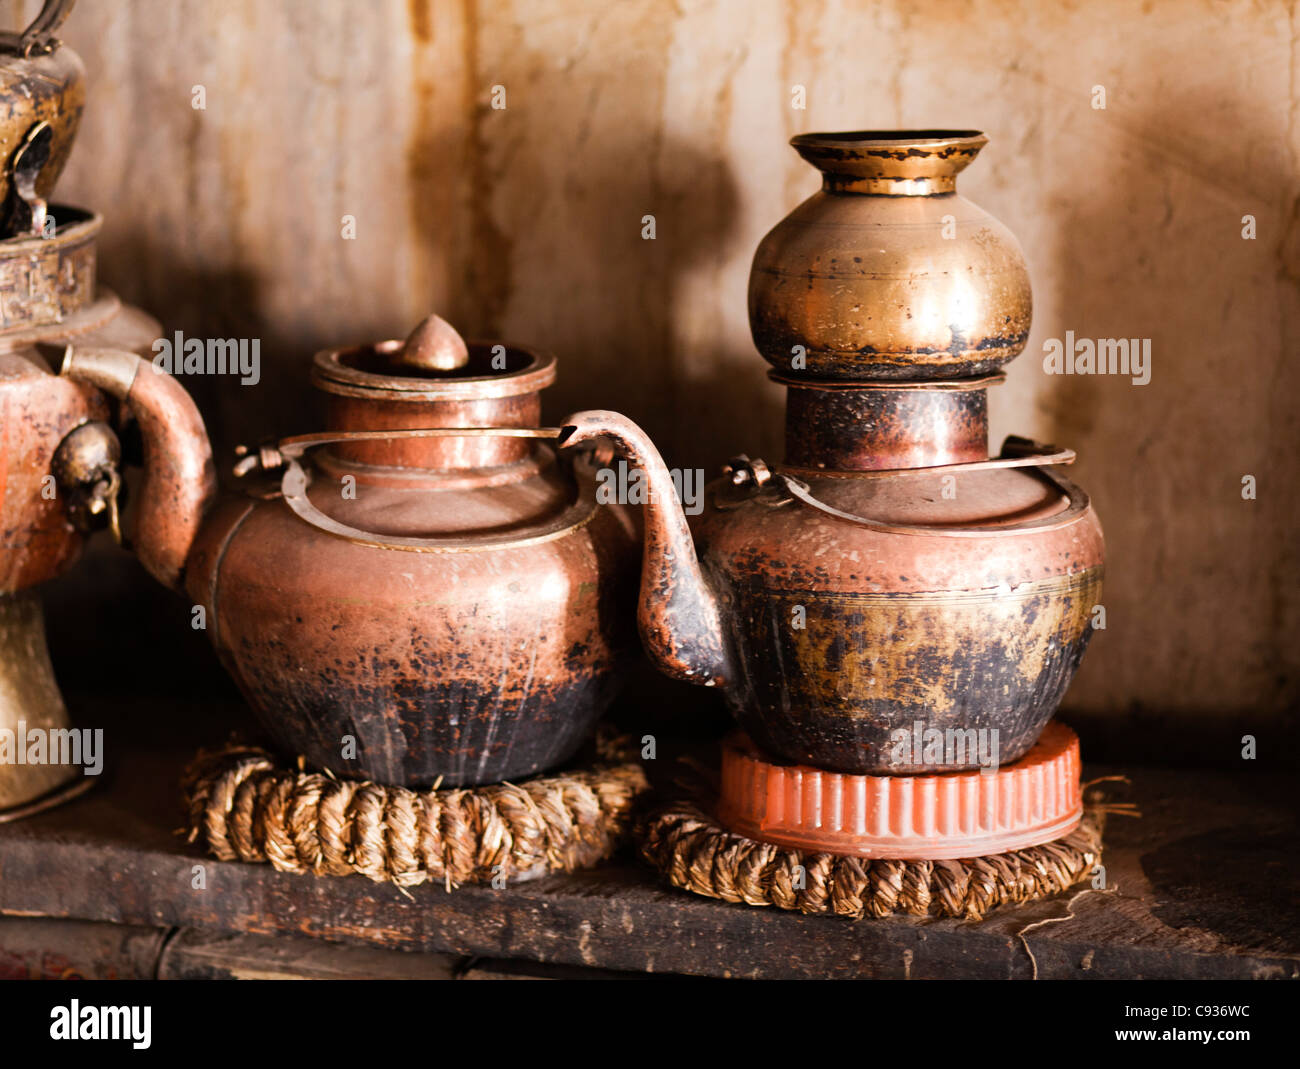 India, Ladakh, Nimmu. Traditional Ladakhi teapots in the kitchen of an aristocrat's old house. - Stock Image